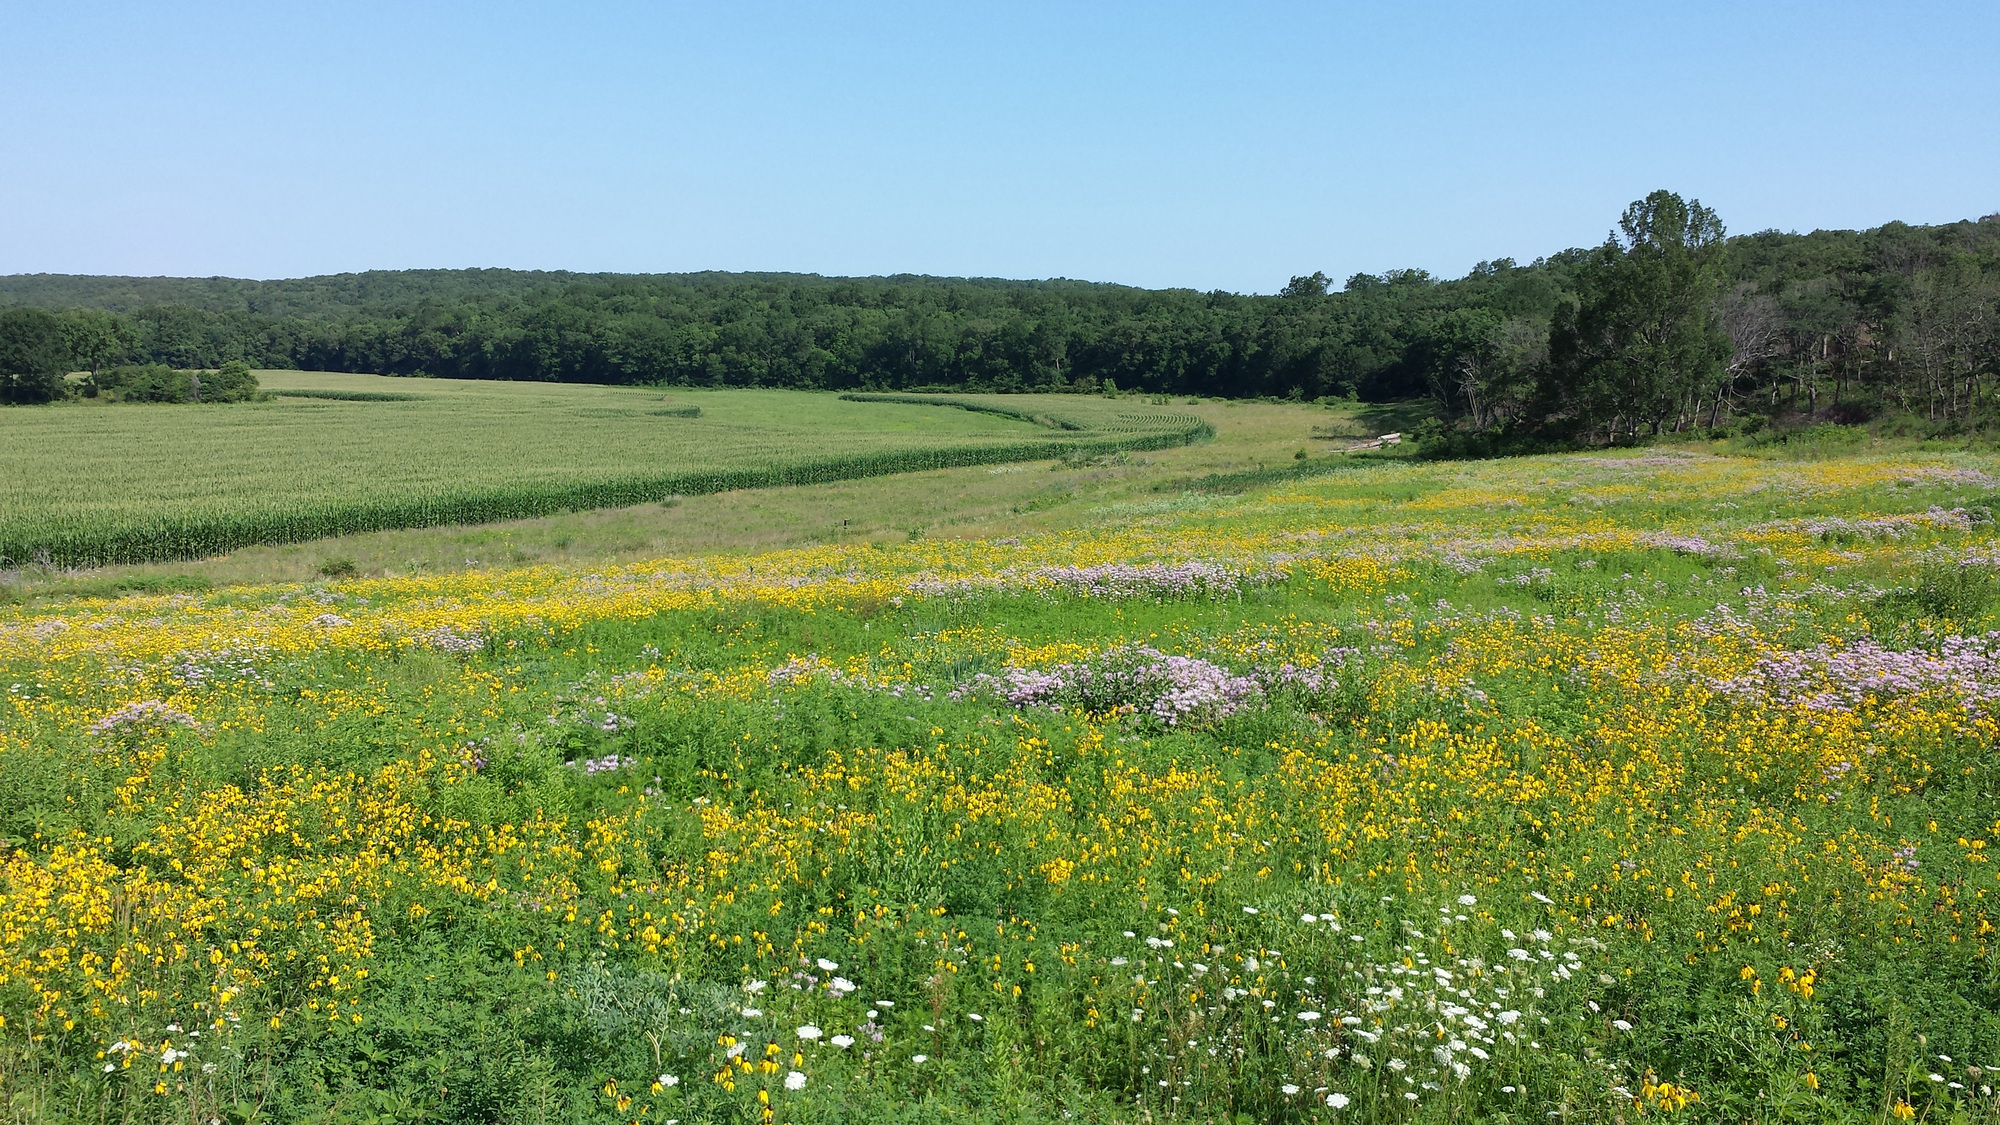 Grasslands planted along agricultural fields can keep runoff out of waterways.